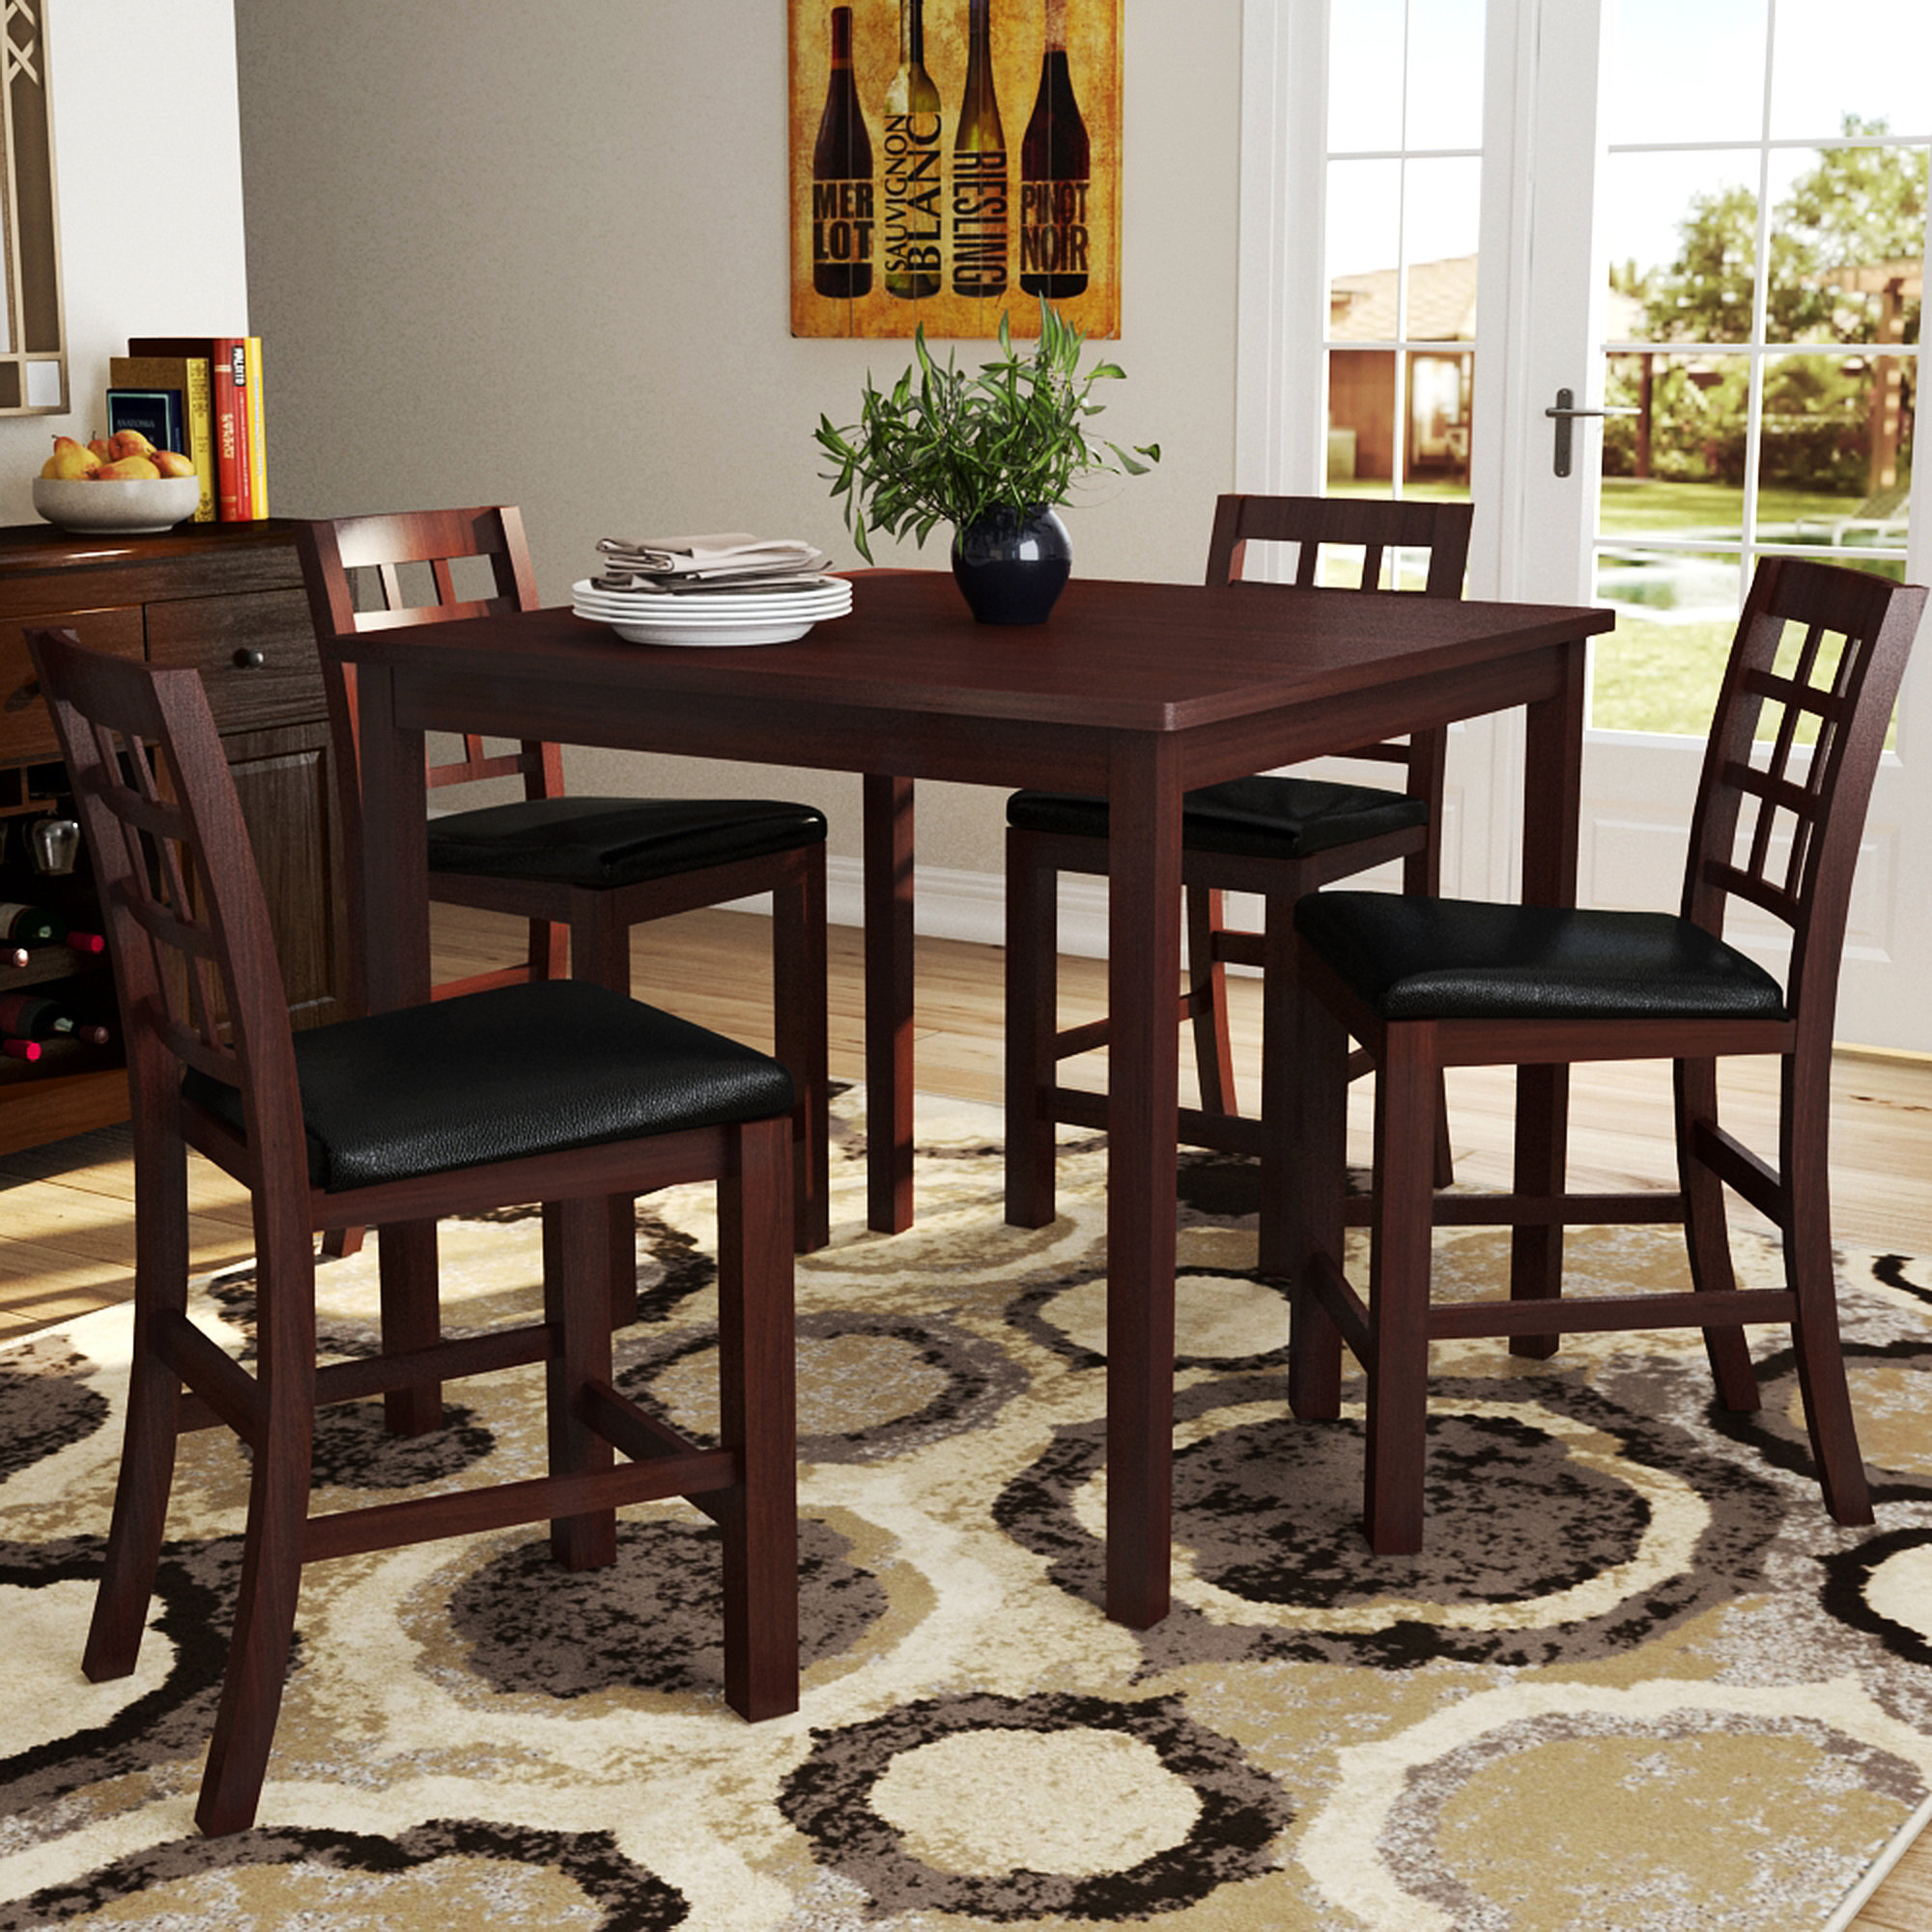 Current Penelope 3 Piece Counter Height Wood Dining Sets With Regard To Red Barrel Studio Plymouth 5 Piece Counter Height Dining Set (#2 of 20)